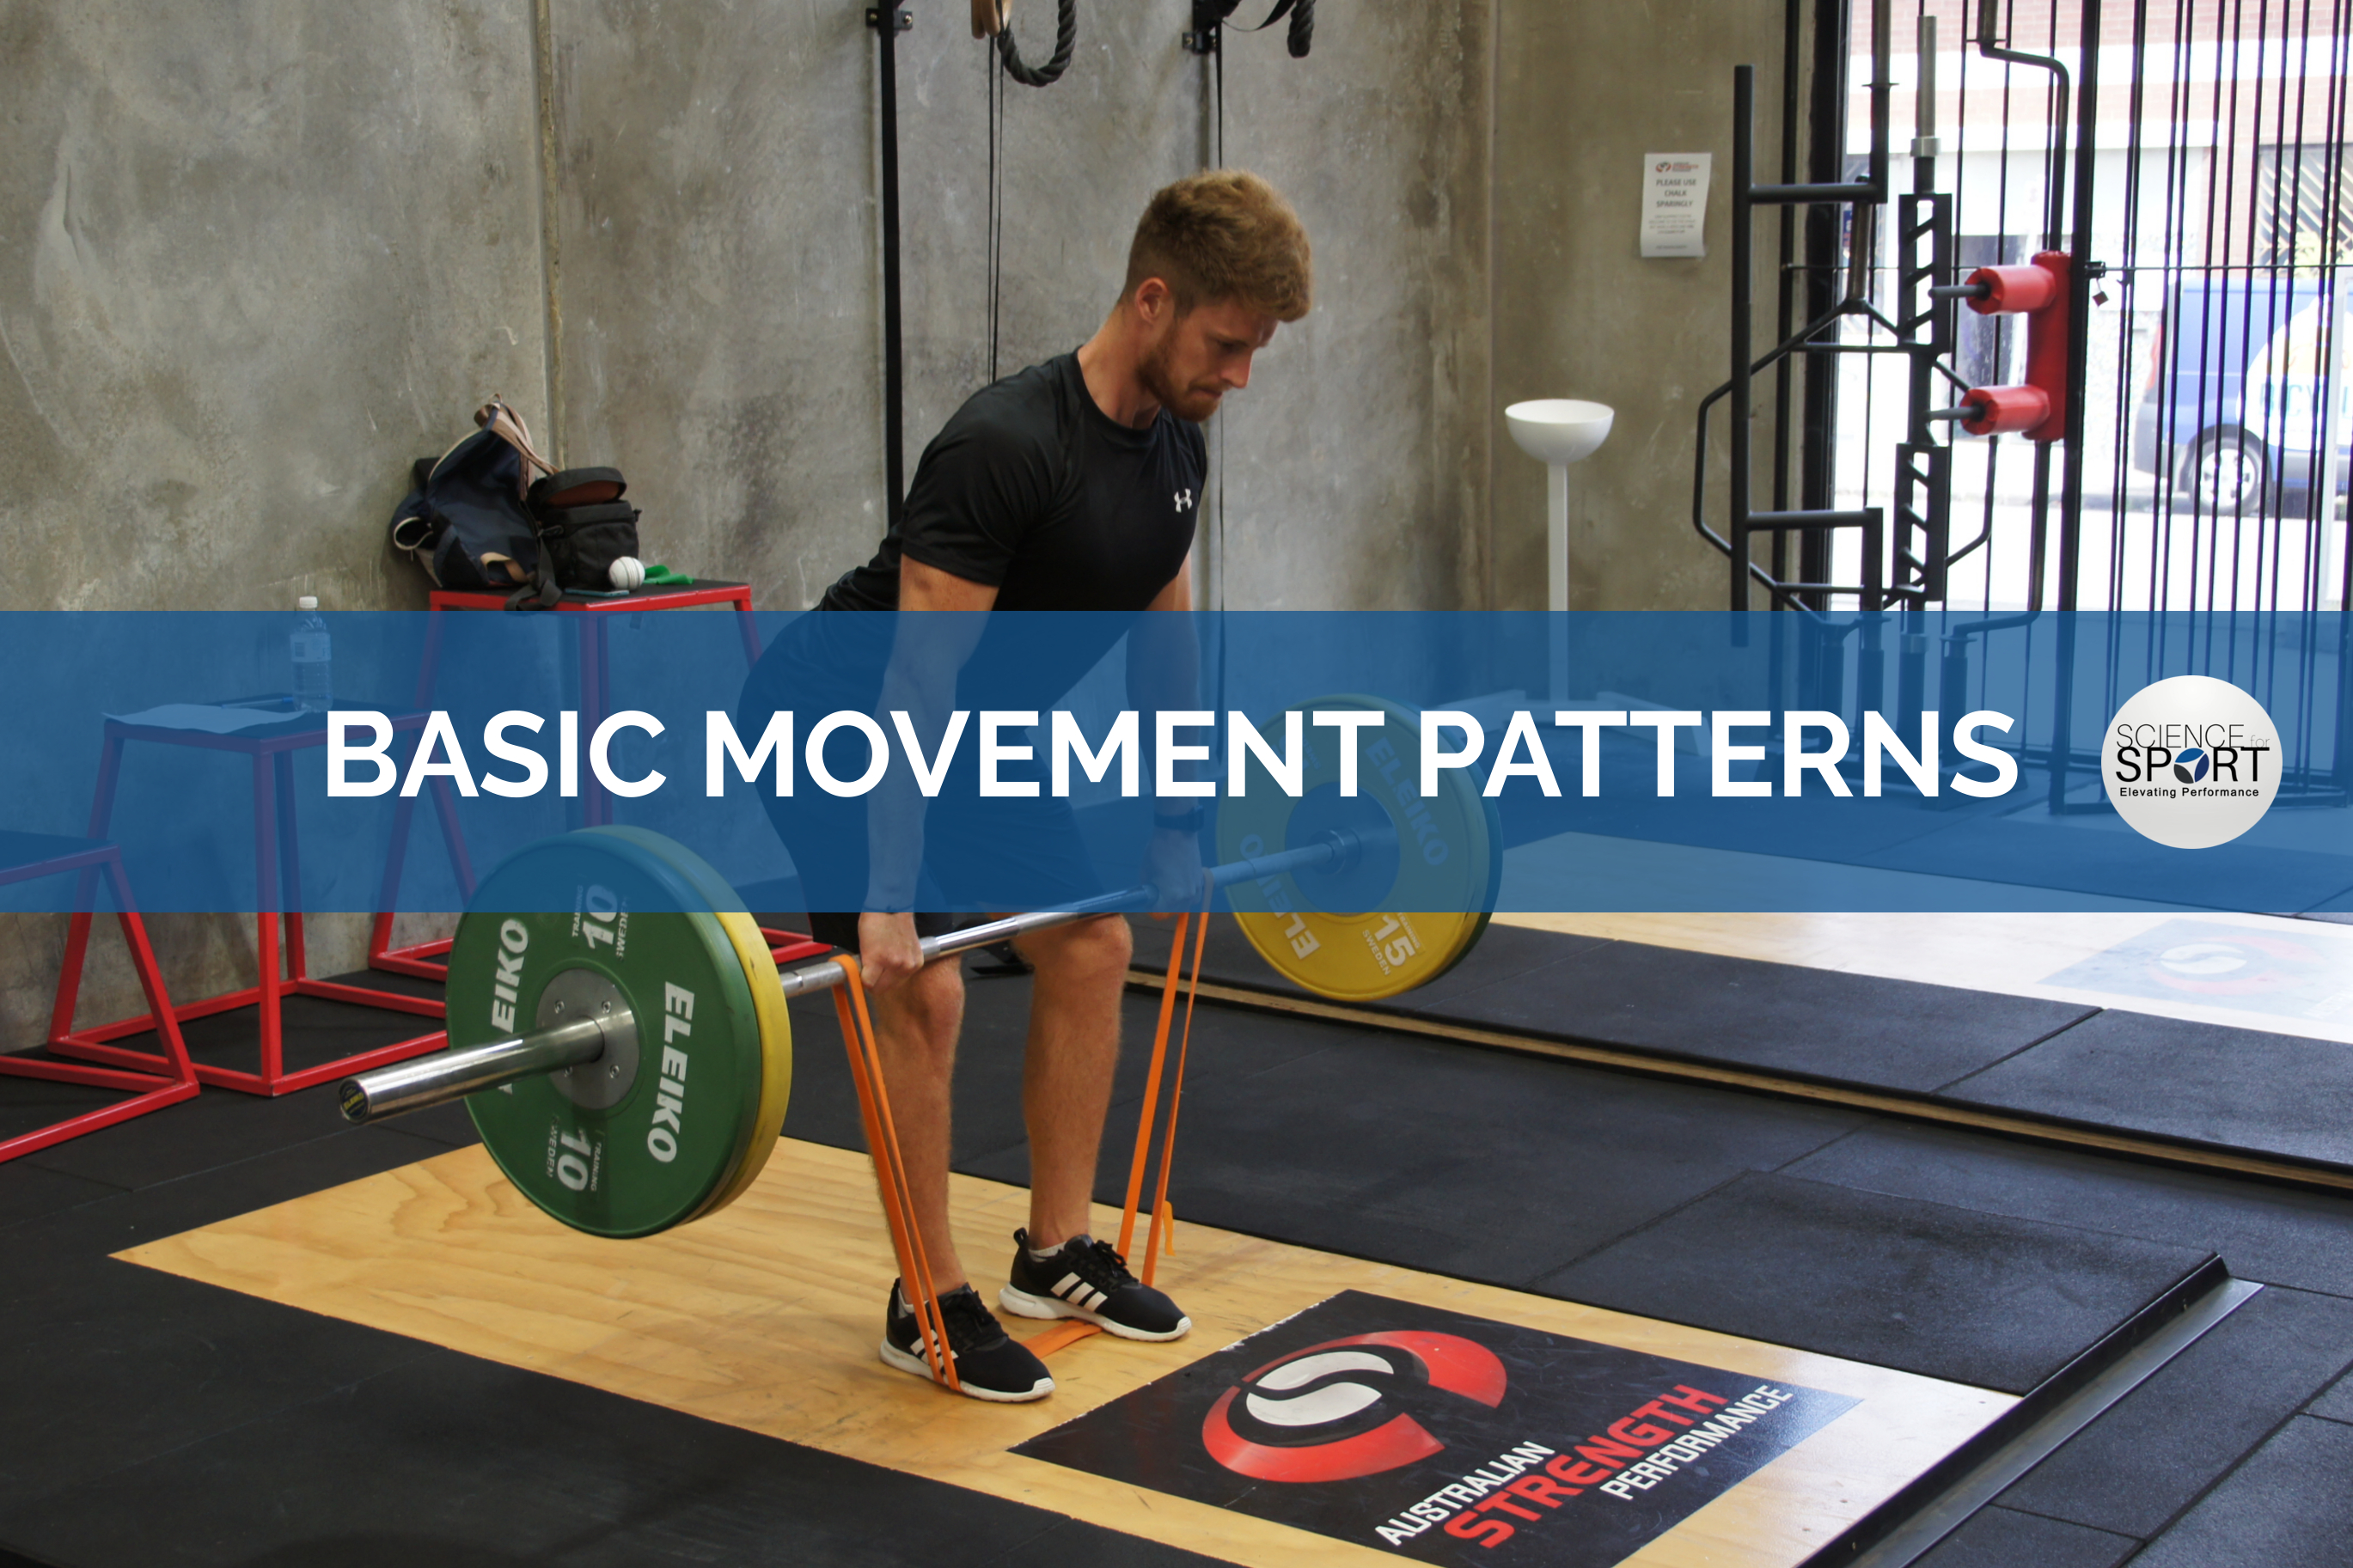 Basic Movement Patterns   Science for Sport